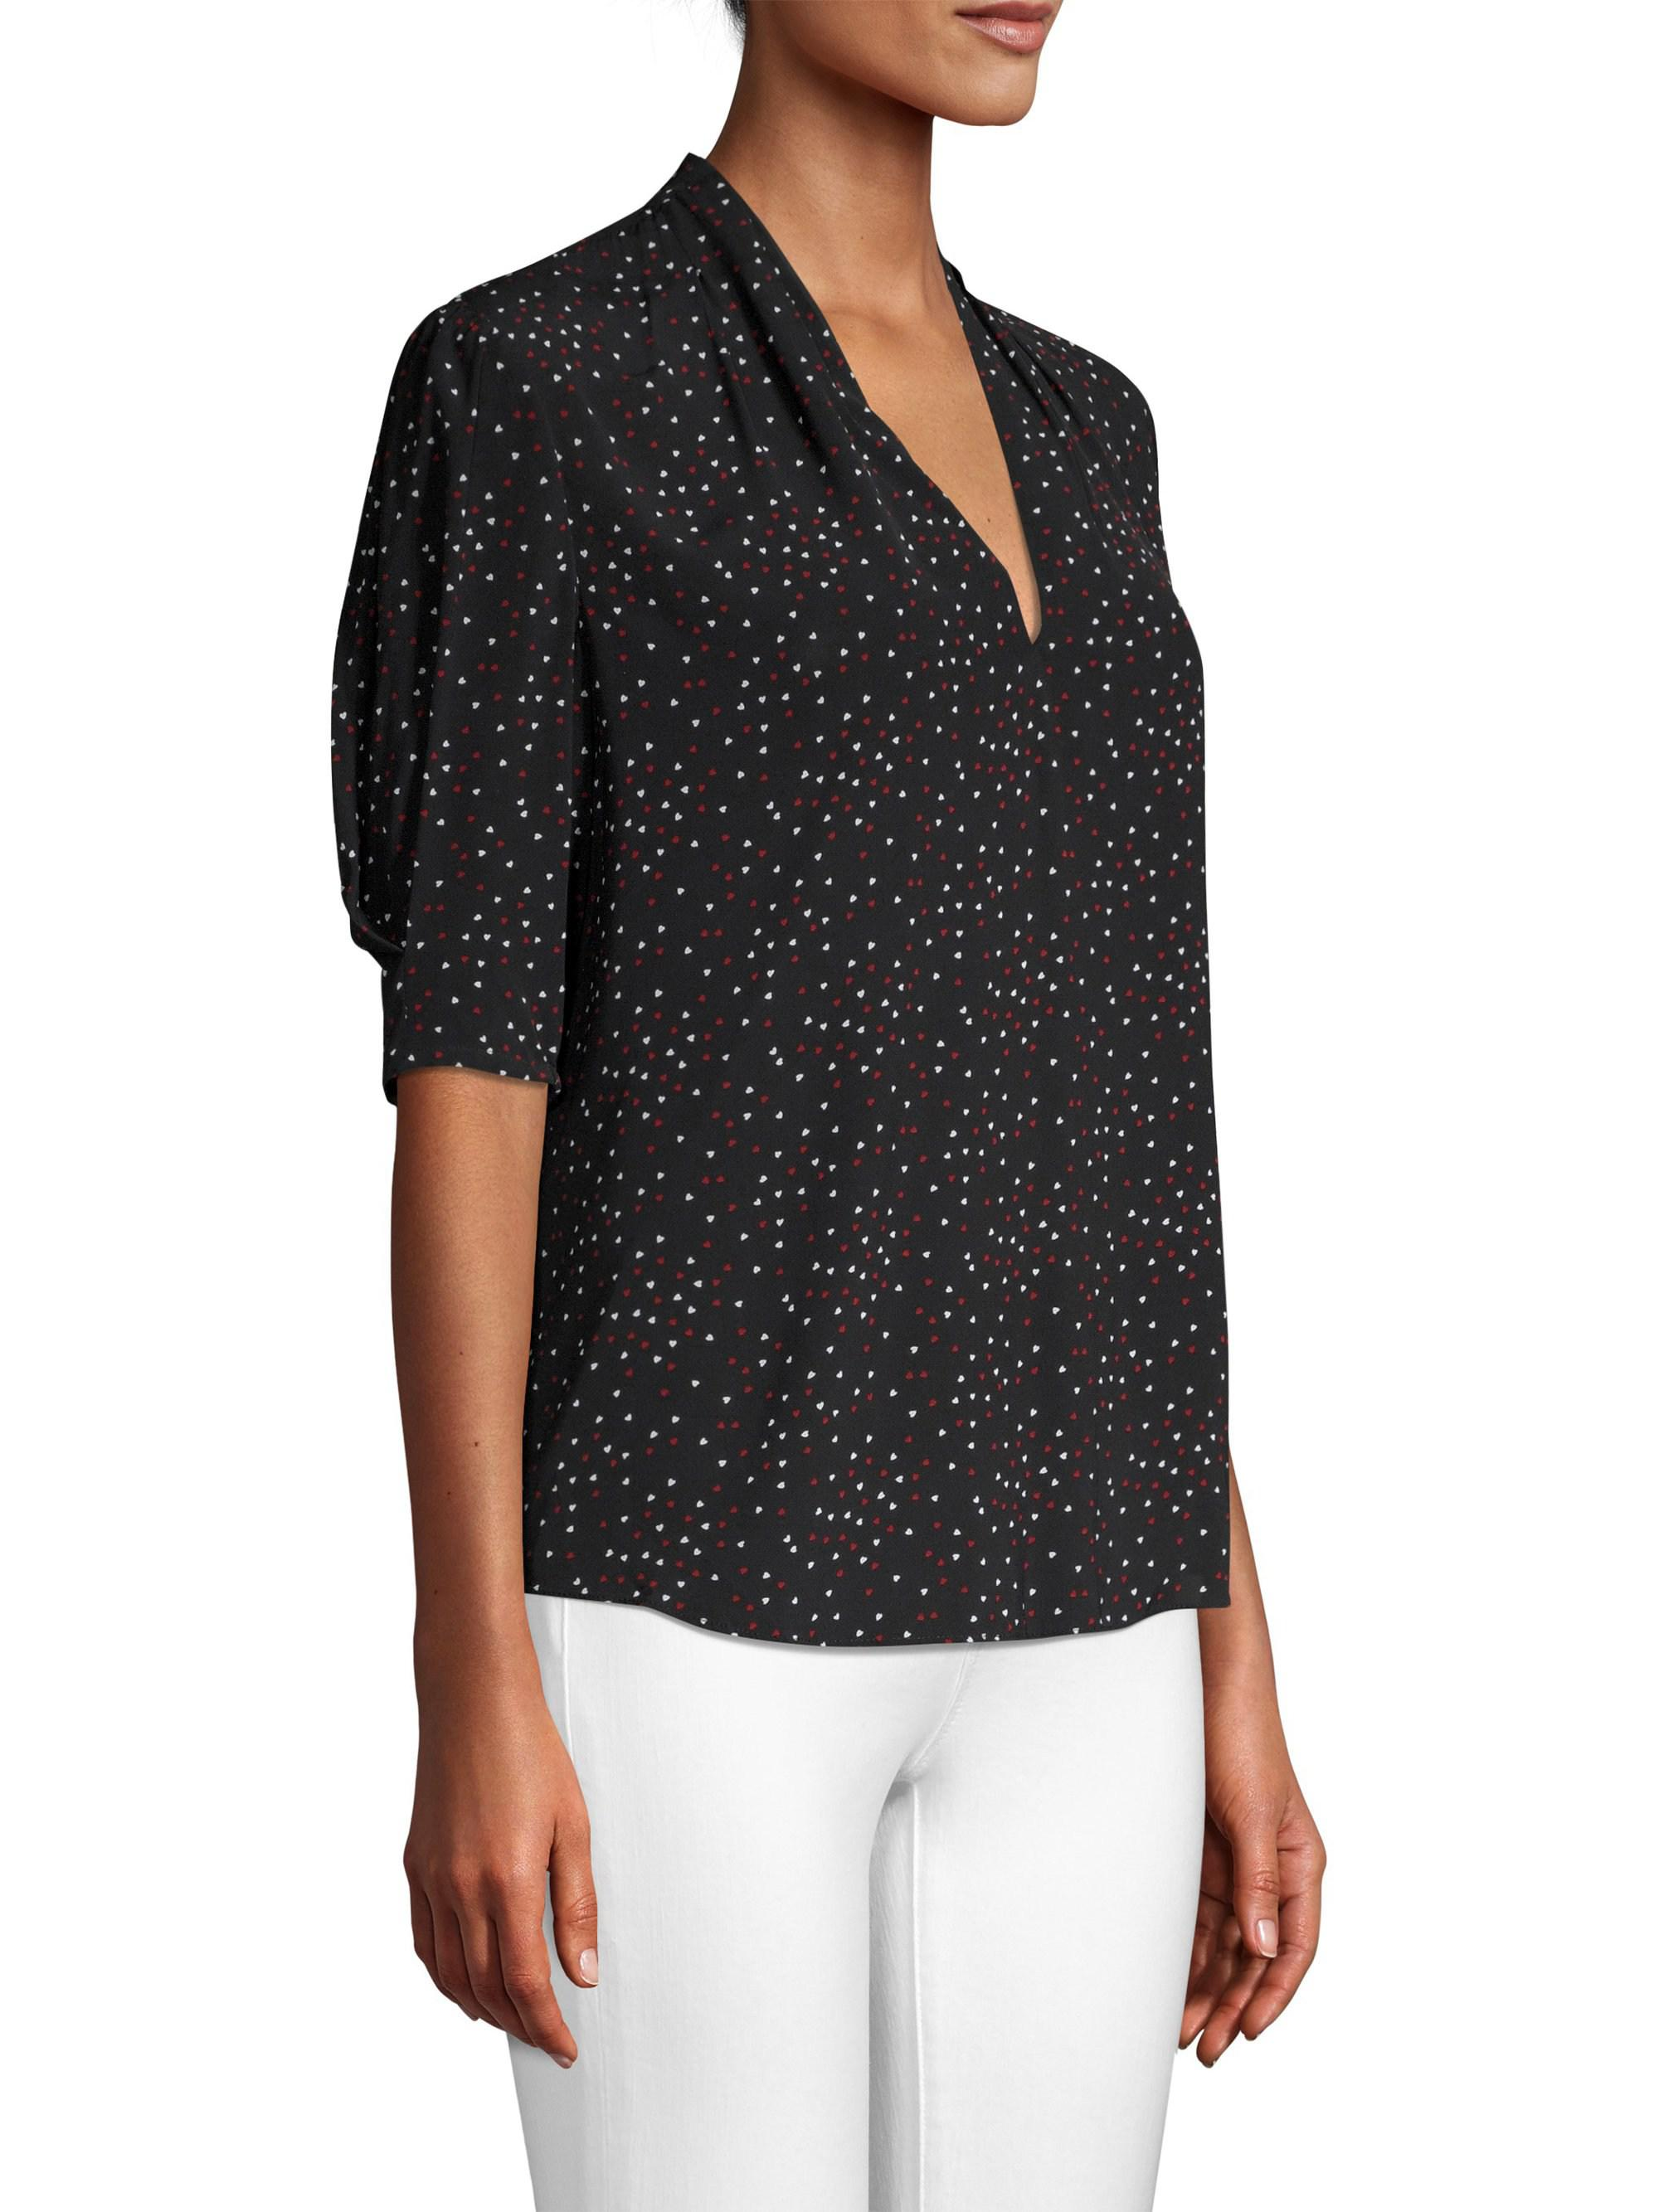 6b1d34a1b639f Joie Ance V-neck Printed Blouse in Black - Lyst